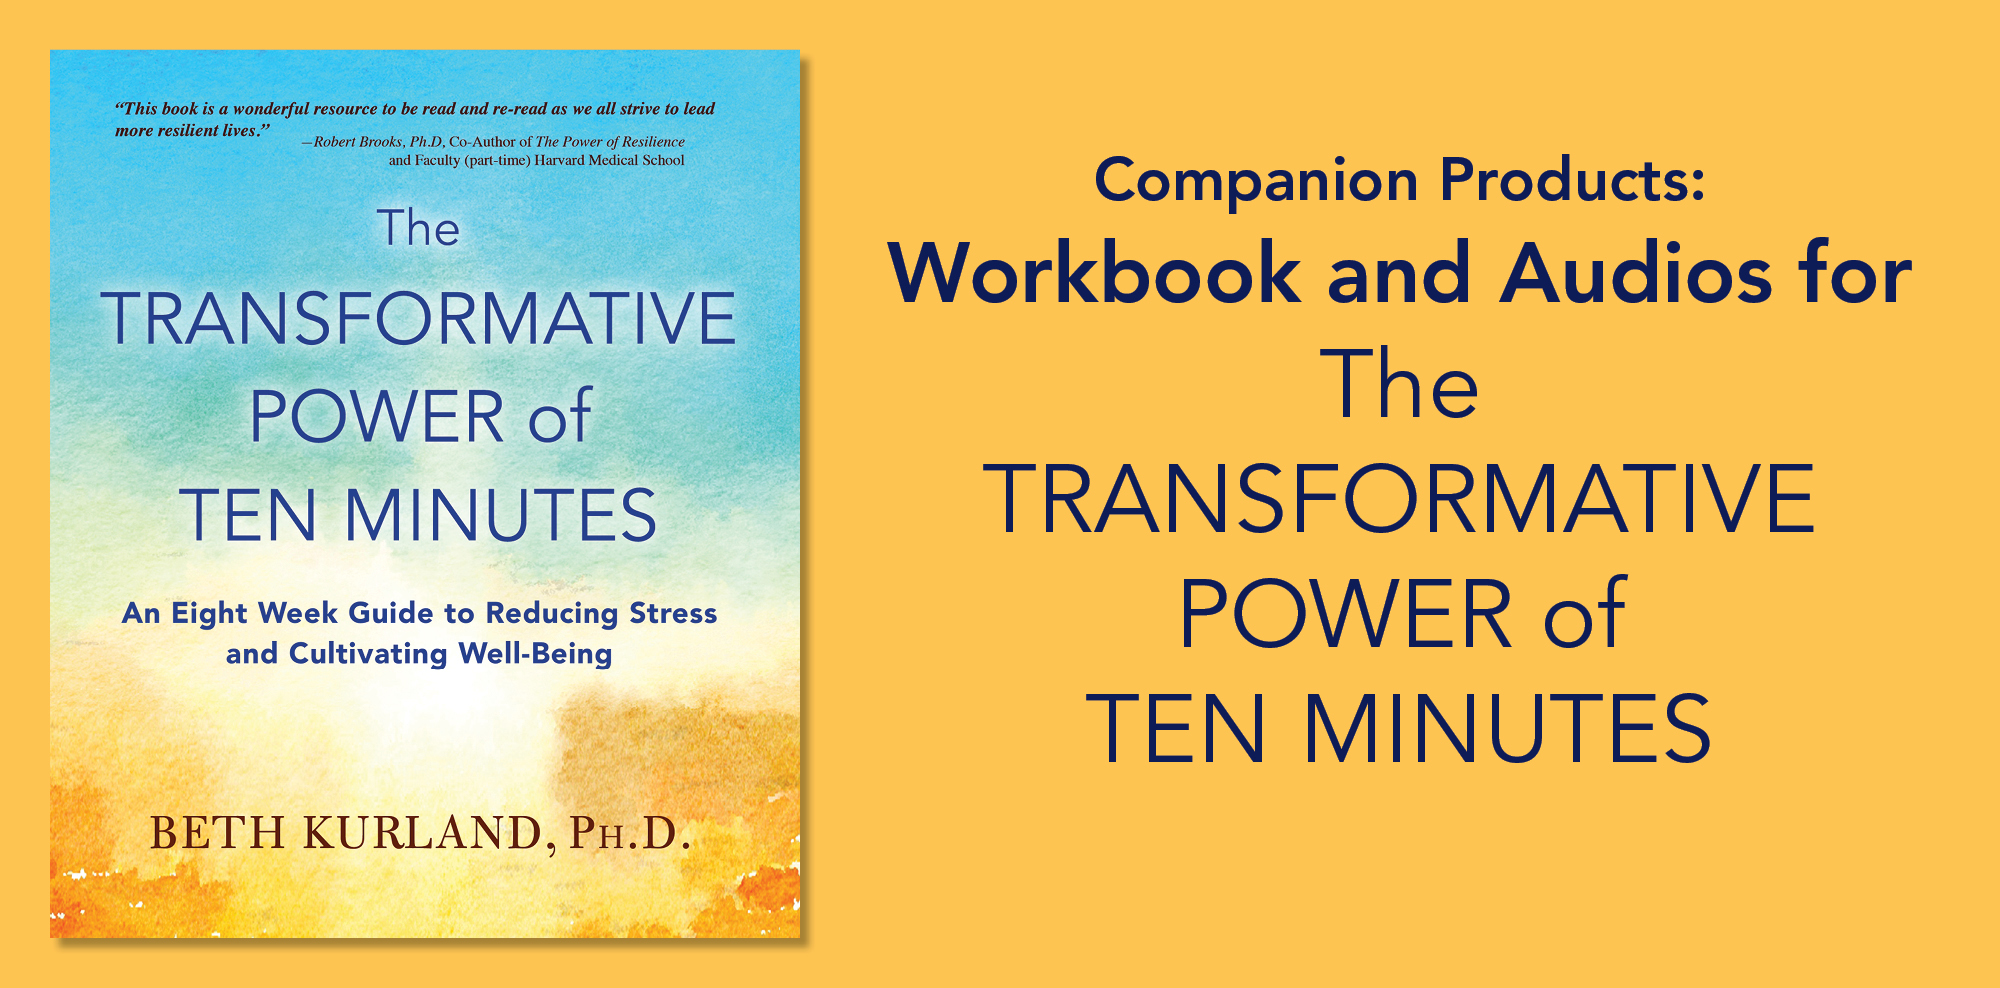 Companion Audios And Worksheets